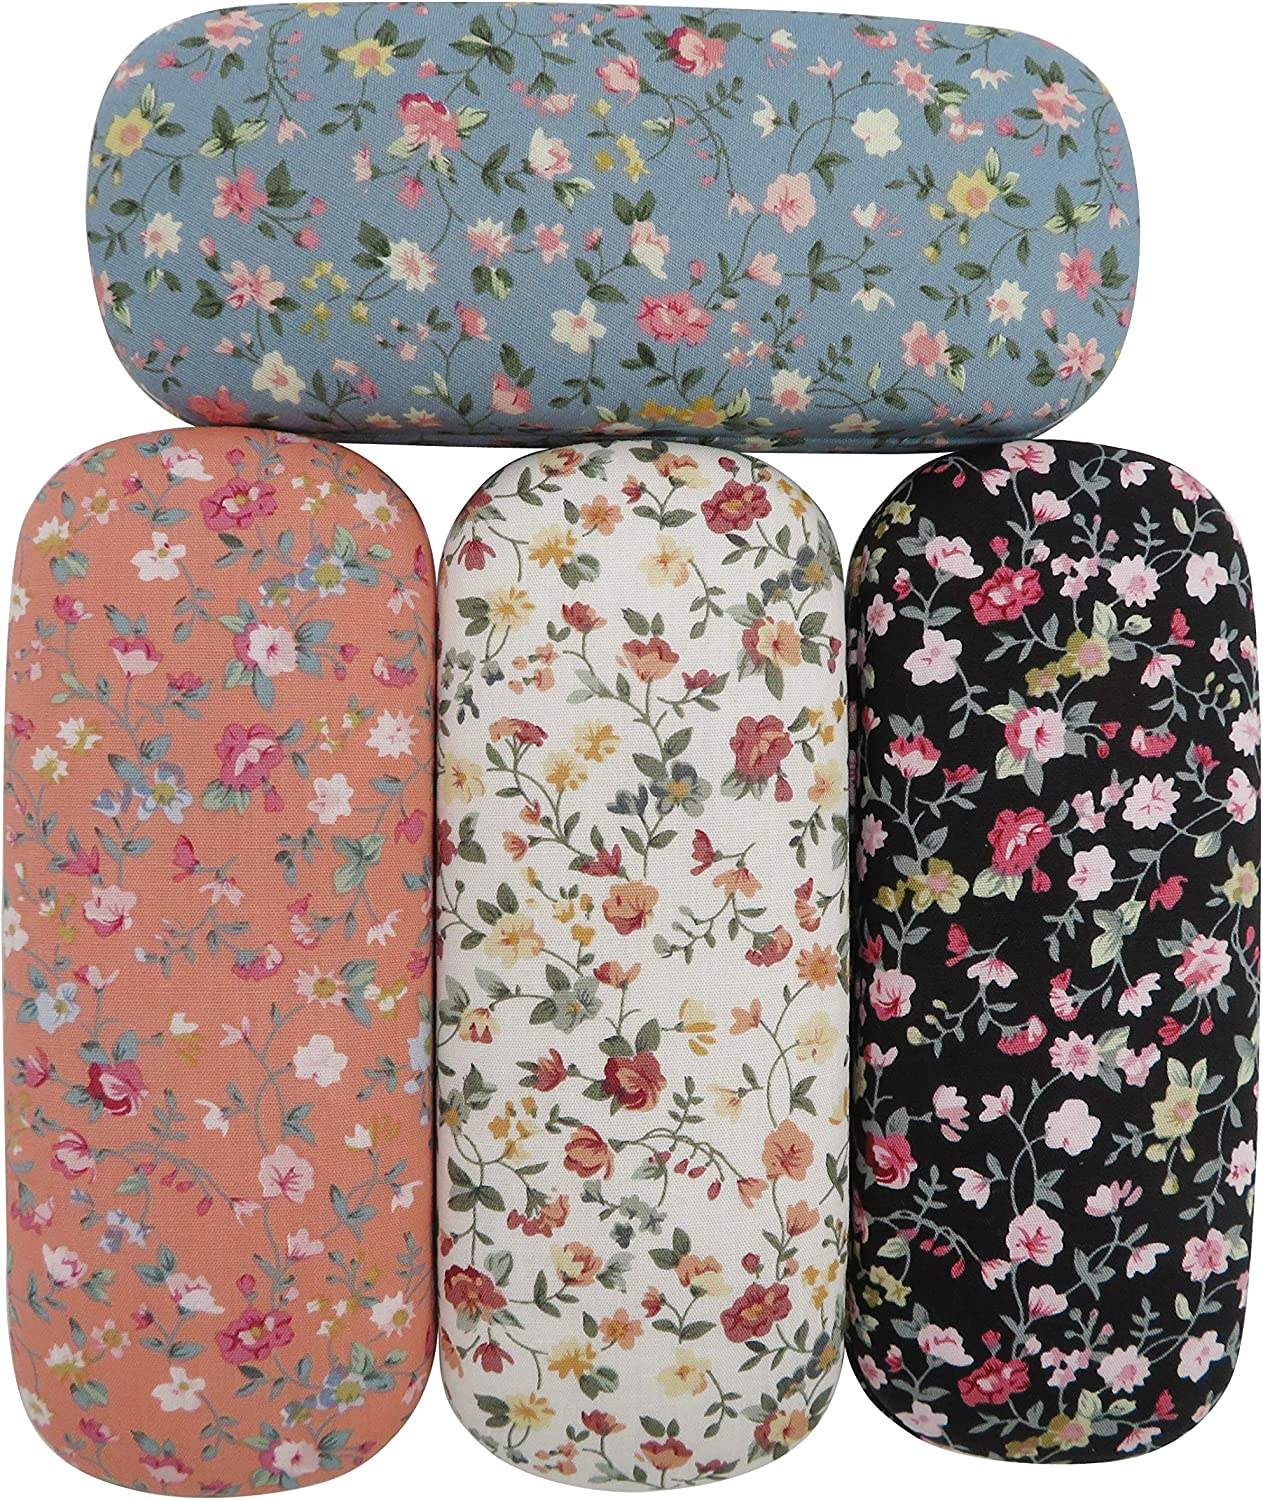 Dodoga 4 Pieces Spectacle Case Portable Hard Shell Eyeglasses Case Floral Flower Fabric Covered Clam Shell Style Eyeglass Case Spectacles Box Eyewear Protector Box for Kids, Women, Girls